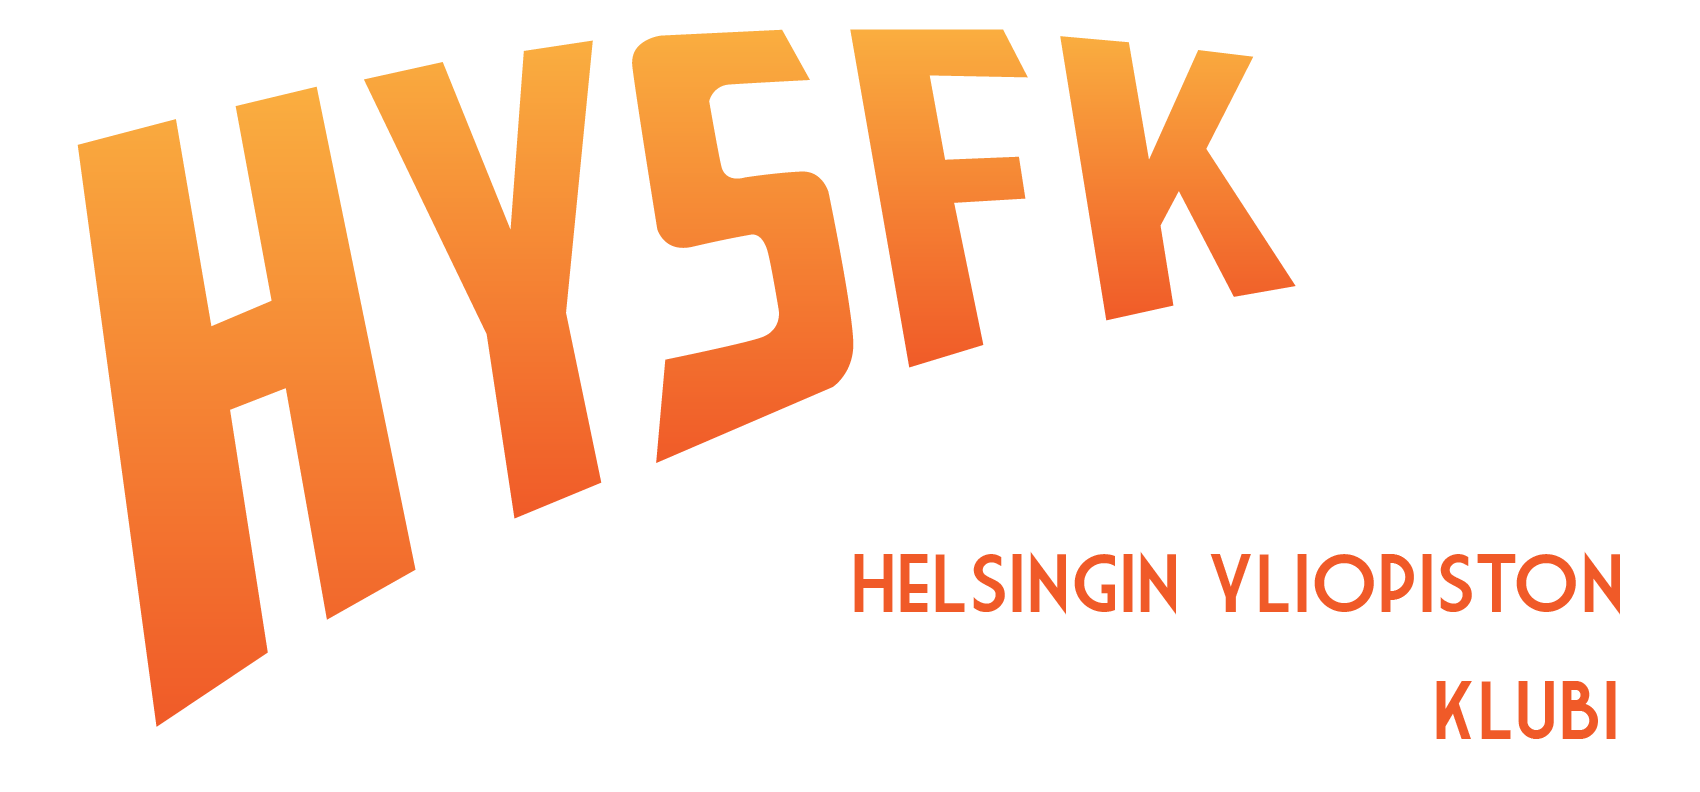 HYSFK – Helsingin yliopiston science fiction klubi ry.